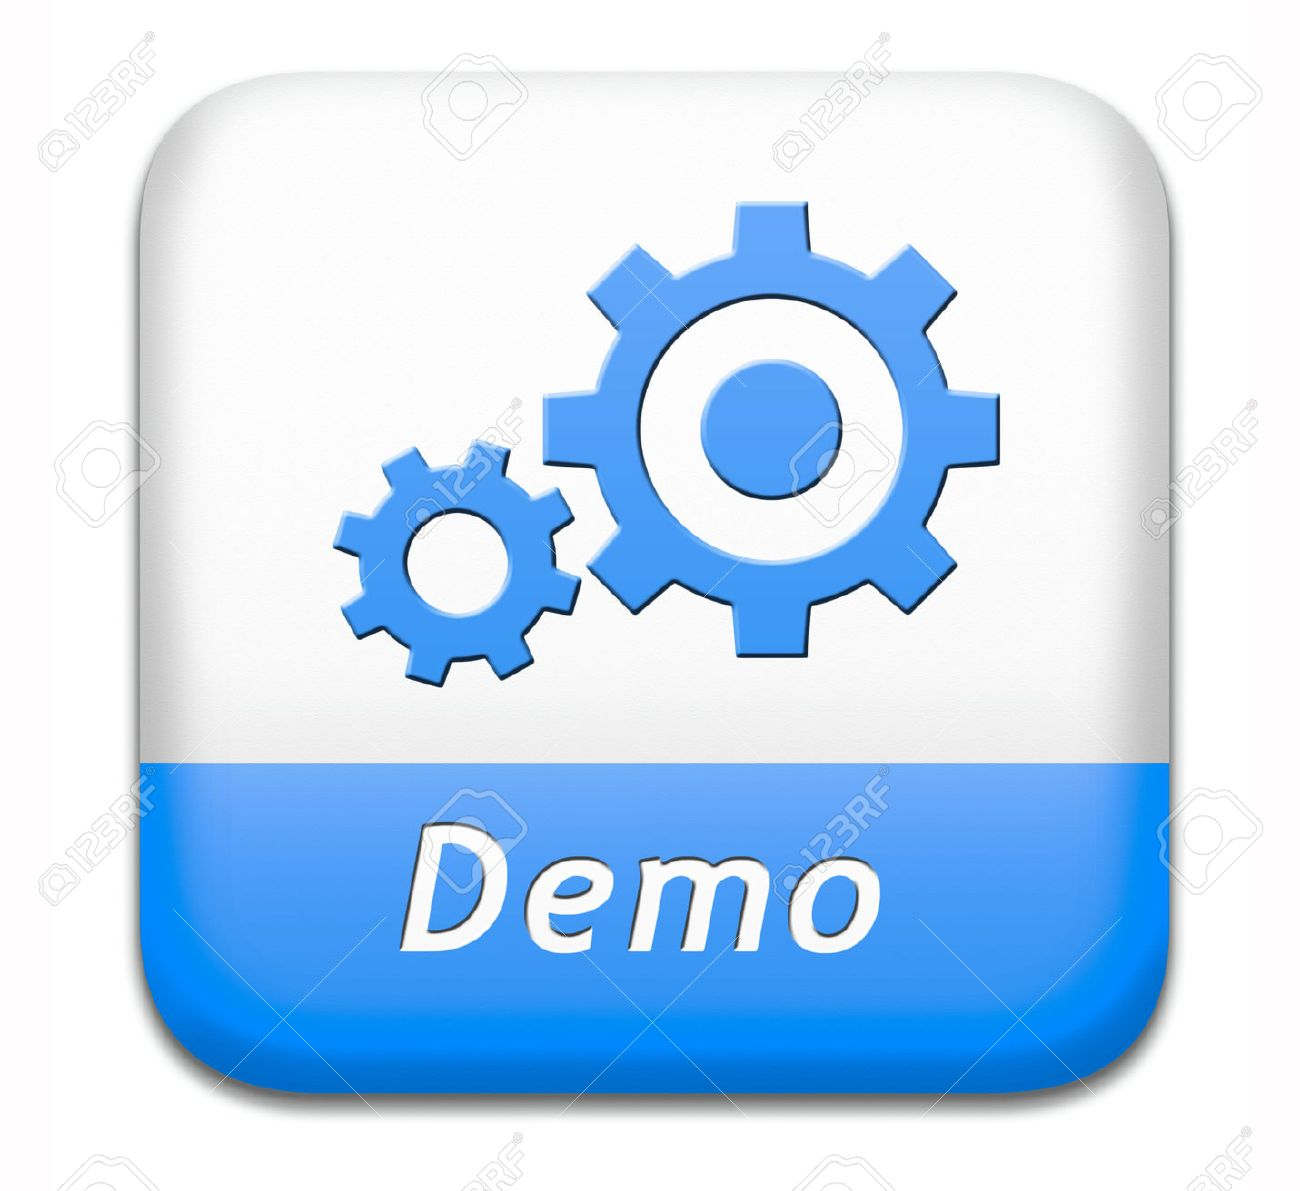 demo button or icon for free trial download demonstration stock